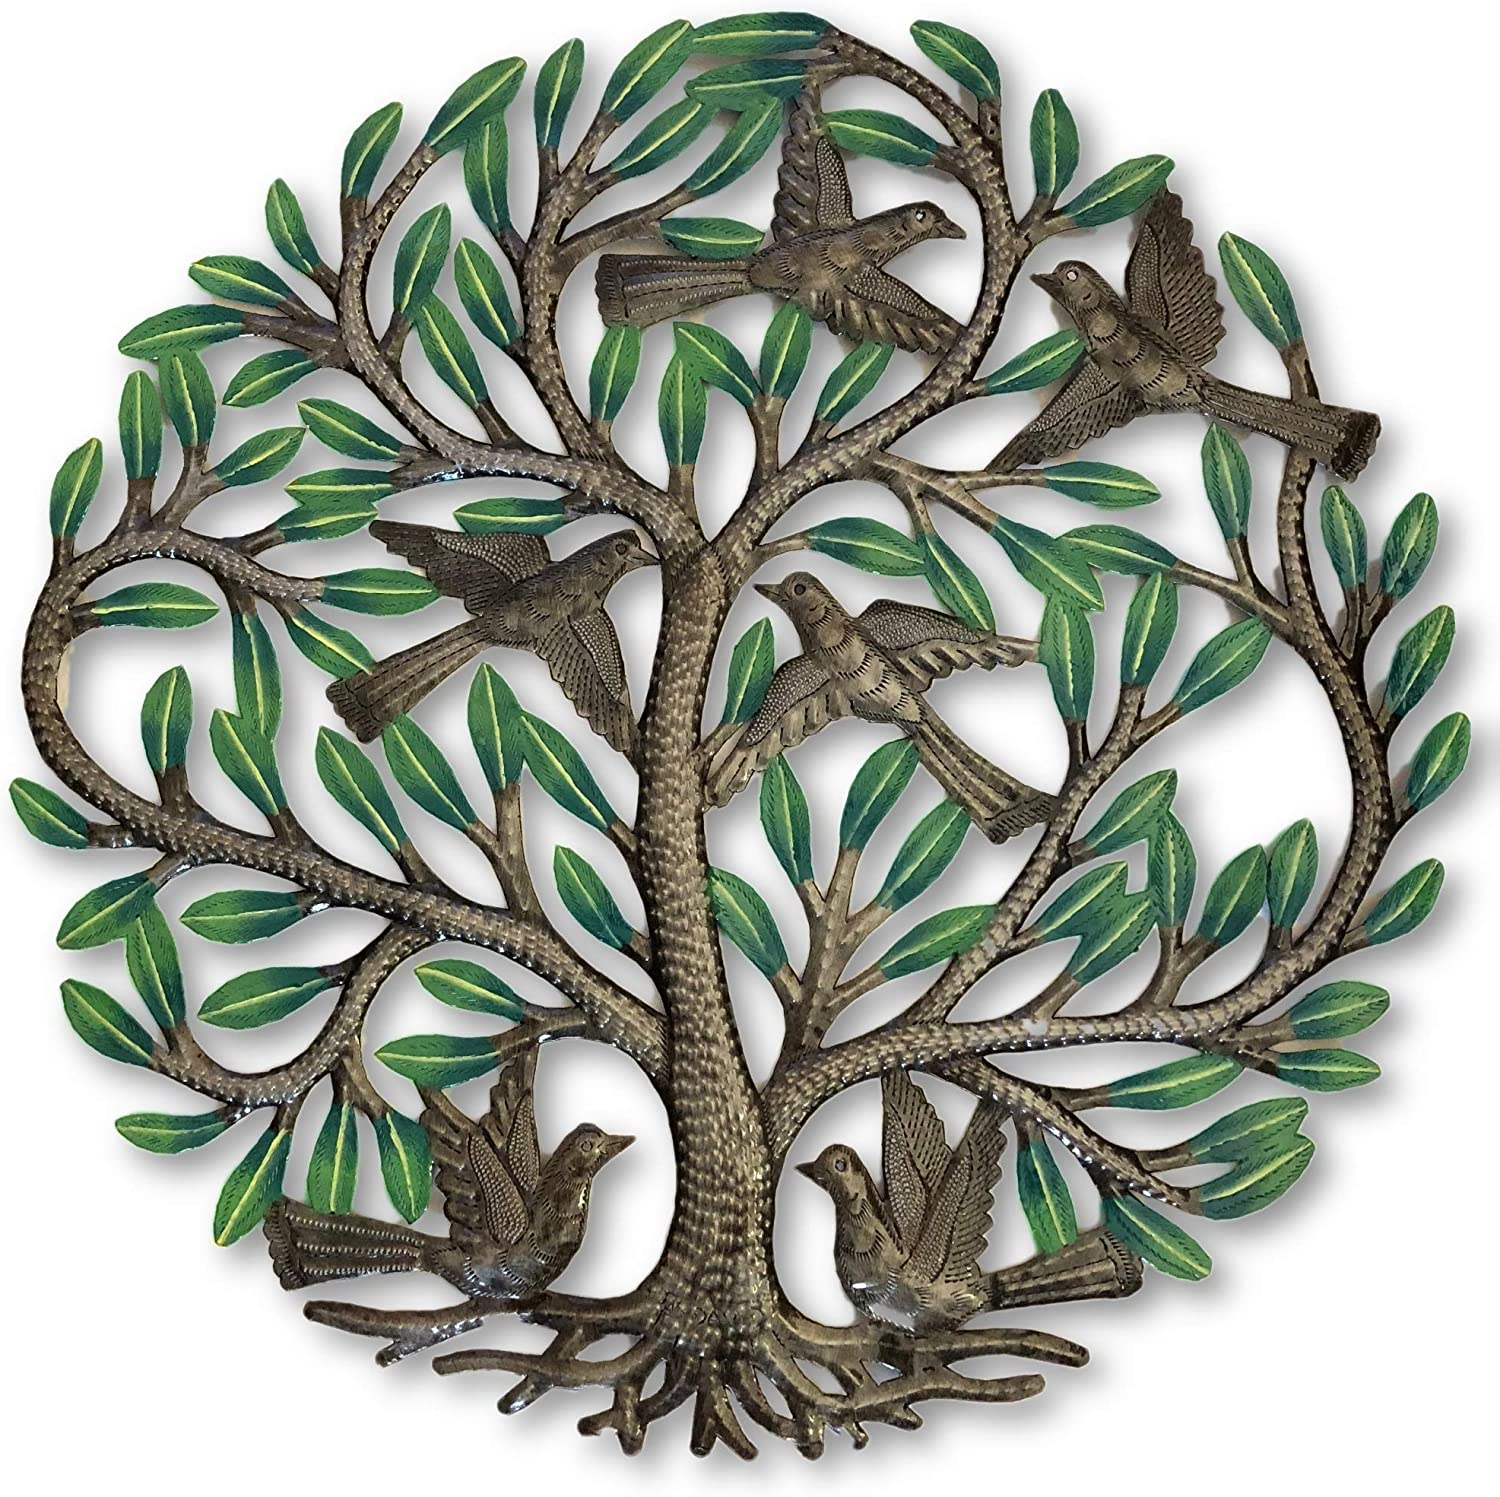 Haitian Hand Painted Tree of Life Wall Decor, Global Art Made in Haiti, Oil Drum Metal Craft with Birds, Decoration for Kitchen or Anywhere in Home, 24 In. x 24 In. (Hand-Painted Tree)